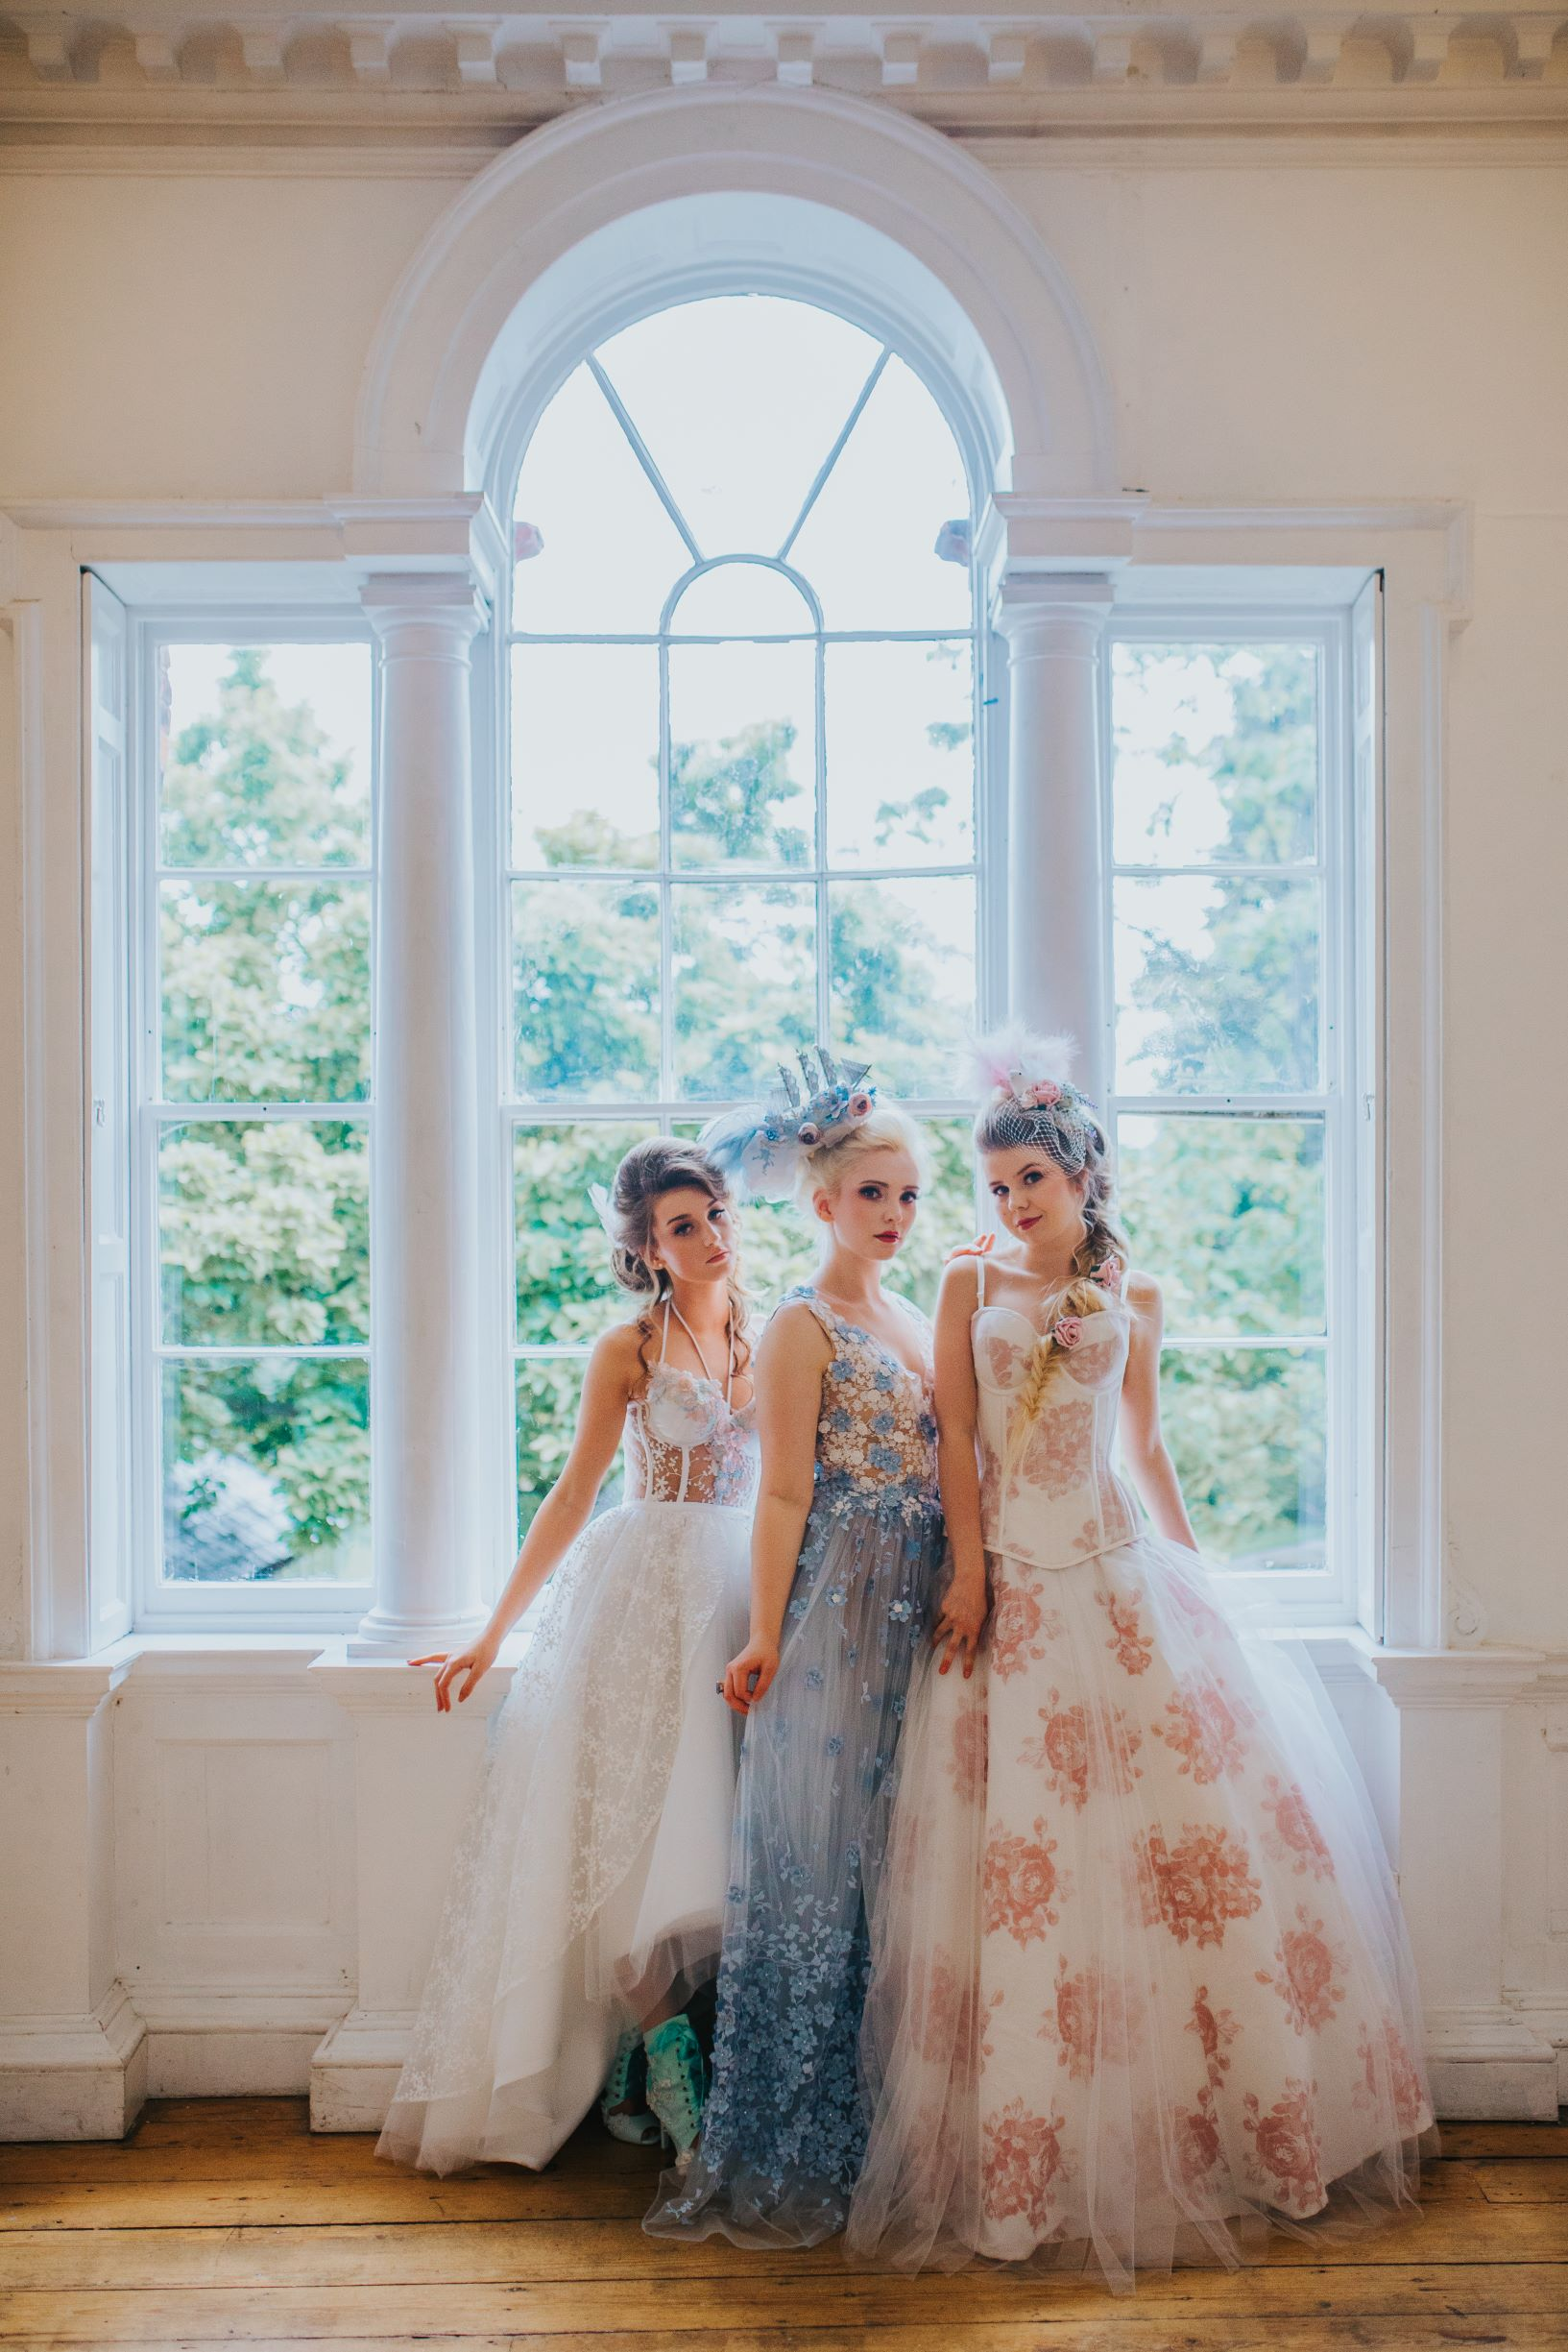 Whimsical wedding- Laura Beresford Photography- unconventional wedding- alternative wedding- three unique wedding looks